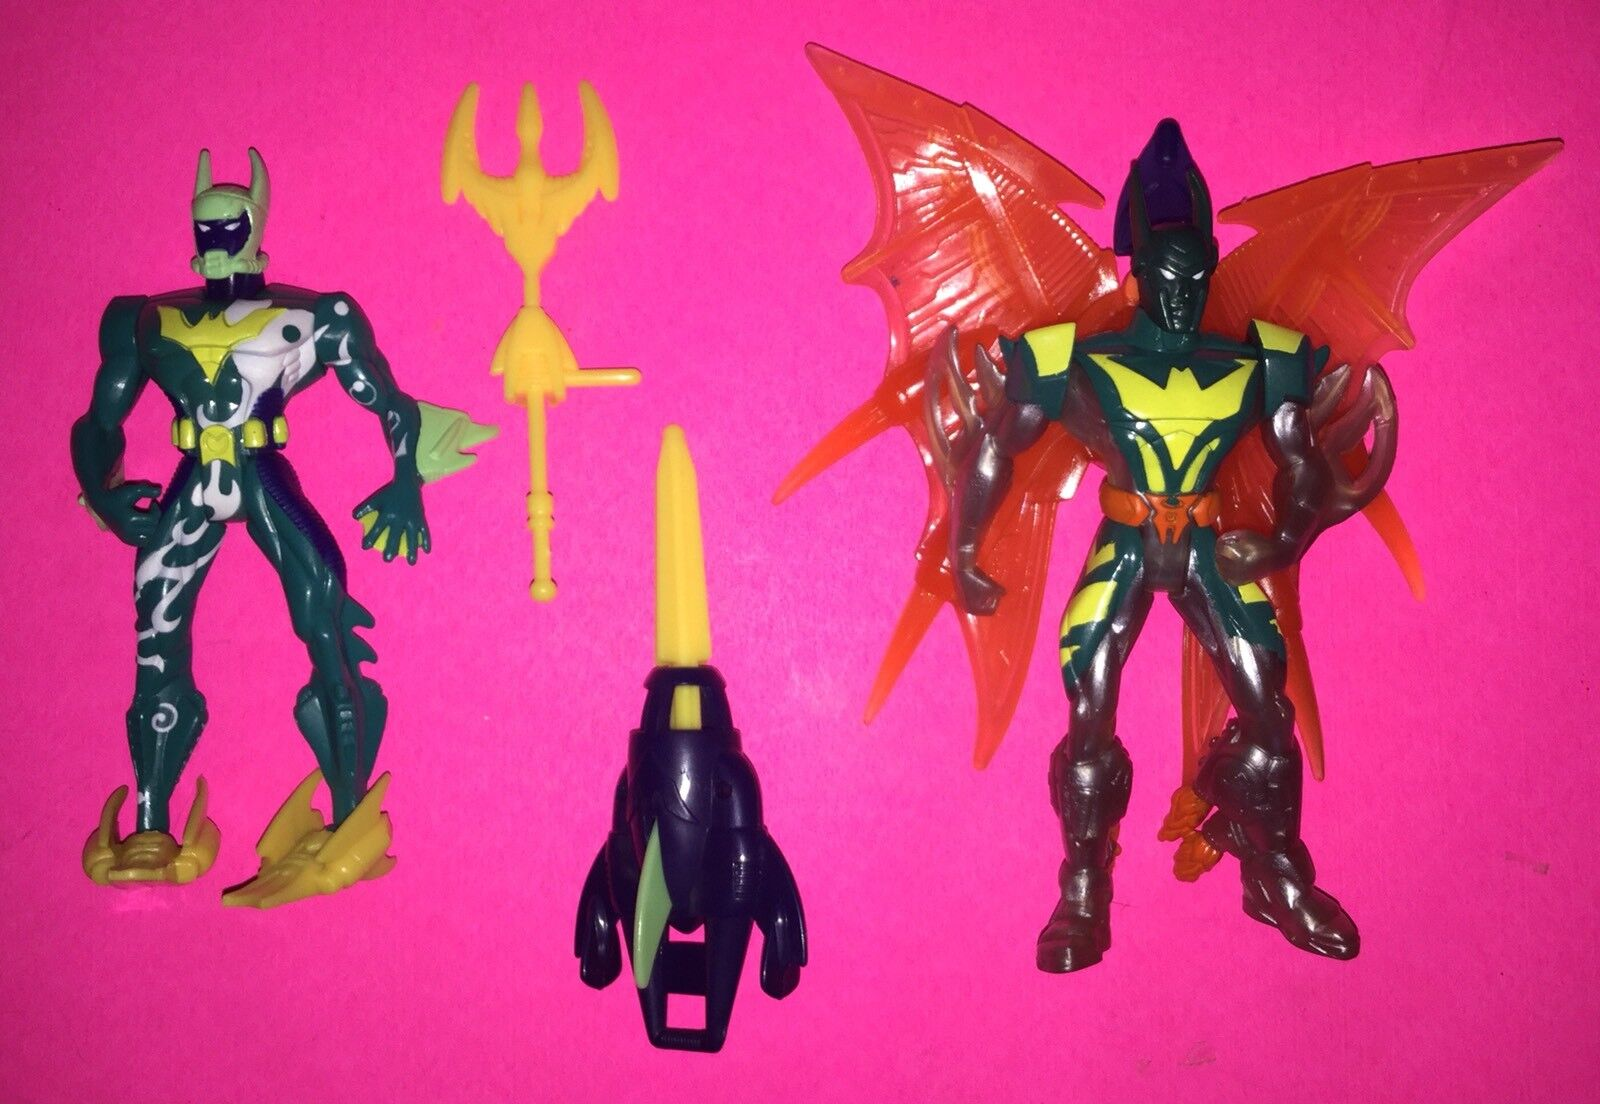 Lot of 14 Batman Beyond Action Action Action Figures (1999 Hasbro) afb0c8